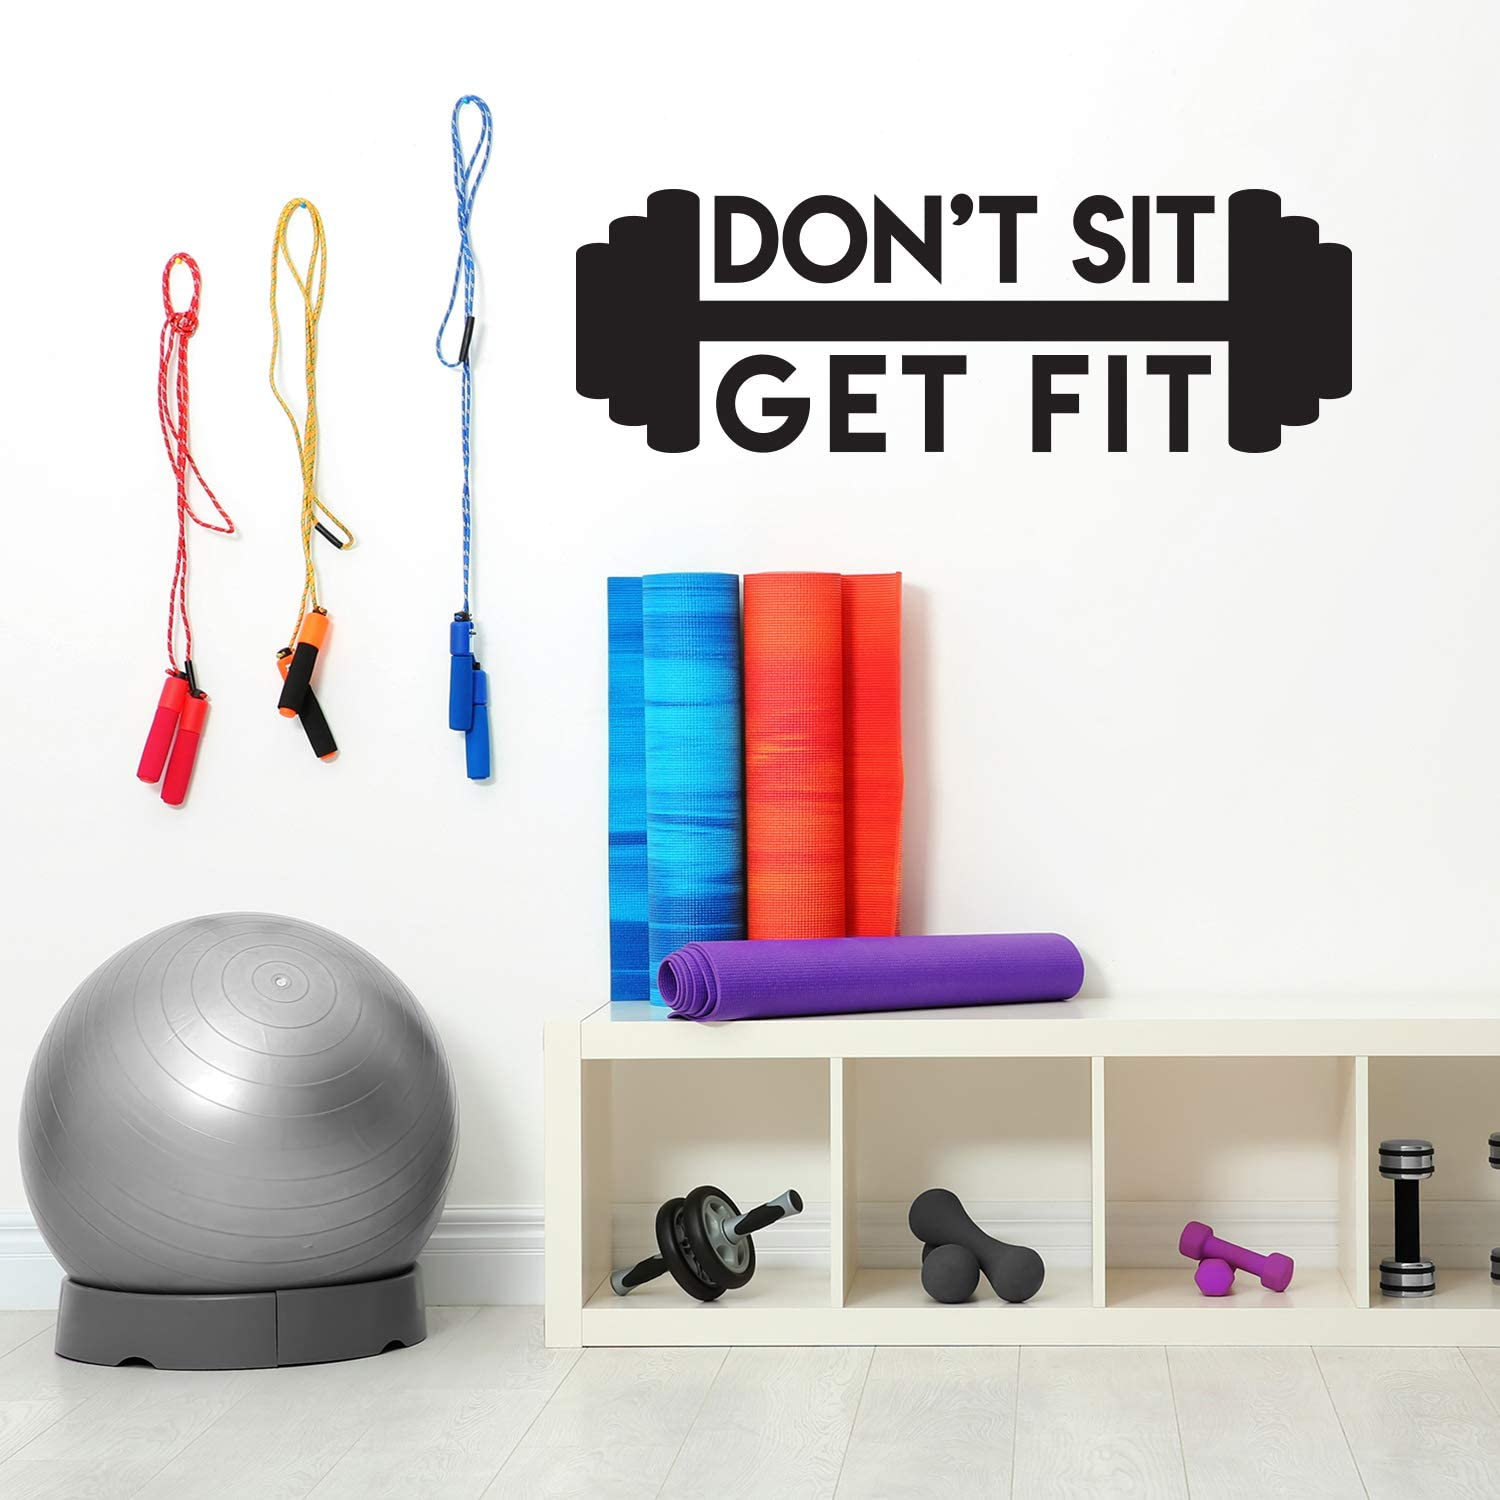 Vinyl Wall Art Decal Black 17 x 50 Dont Sit Get Fit Trendy Motivational Quote Sticker for Home Gym Bedroom Exercise Room Fitness Workout Training Crossfit Decor